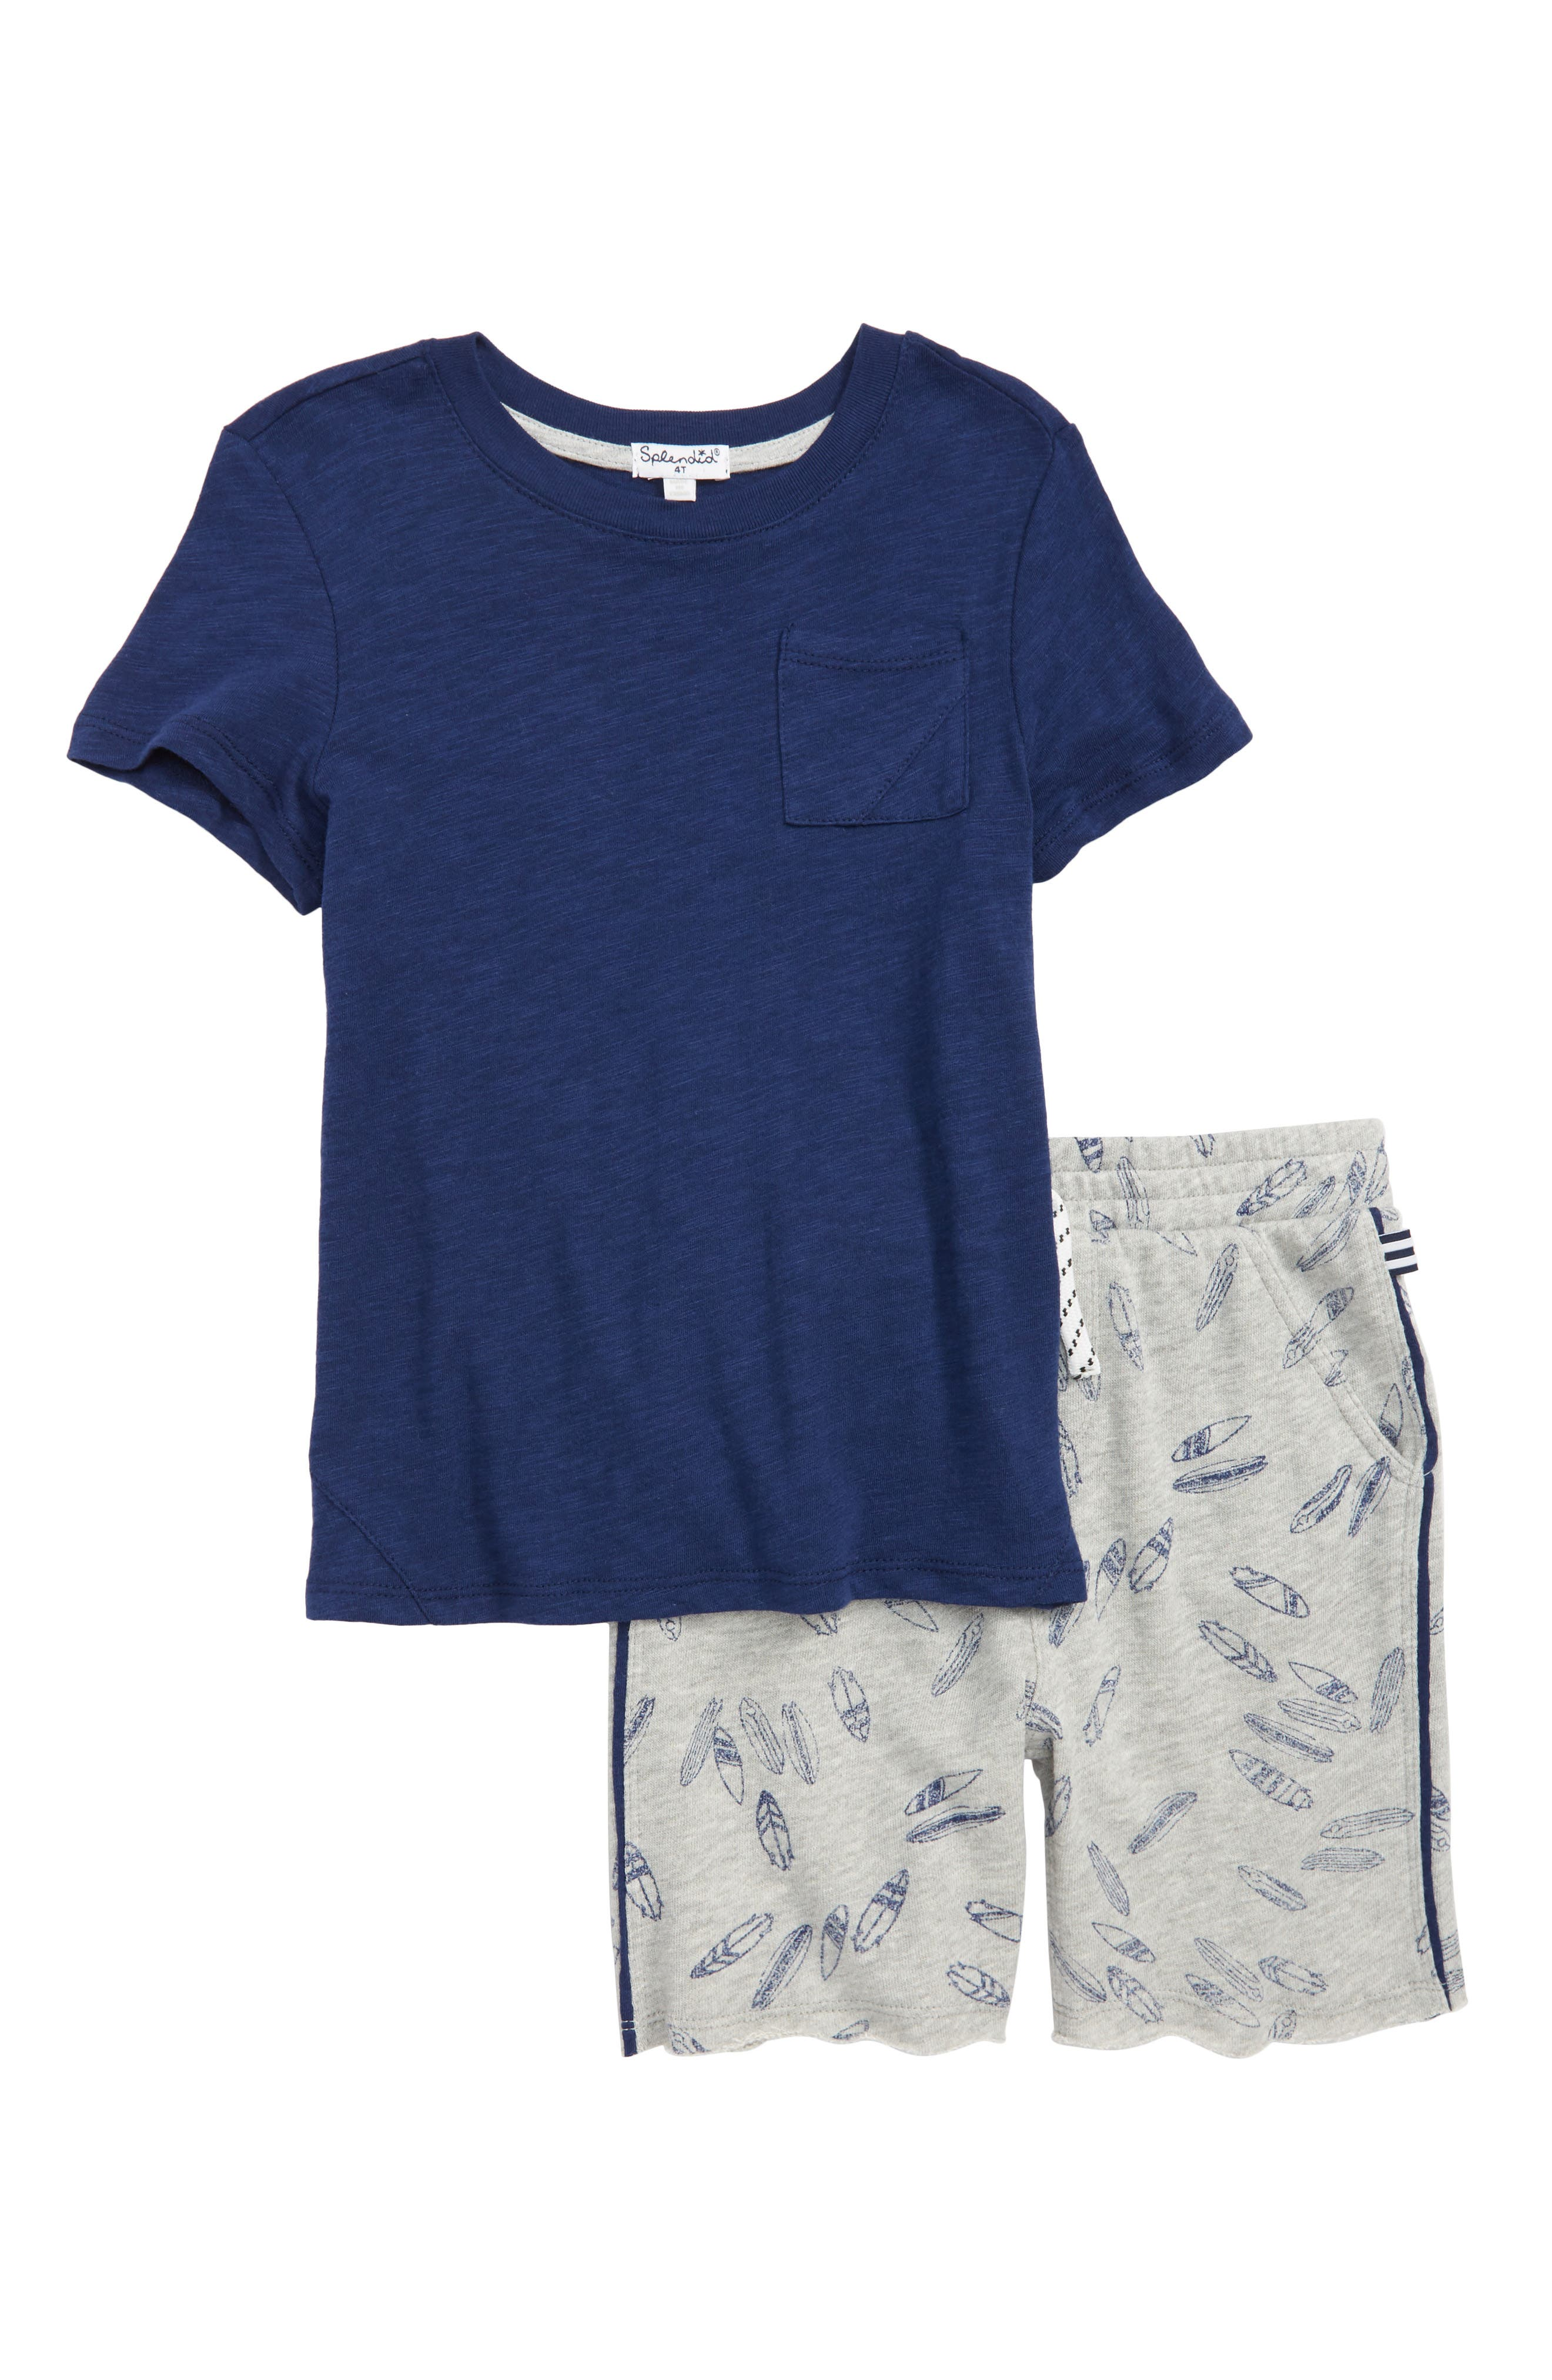 Splendid T-Shirt & Surfboard Graphic Shorts Set (Toddler Boys)